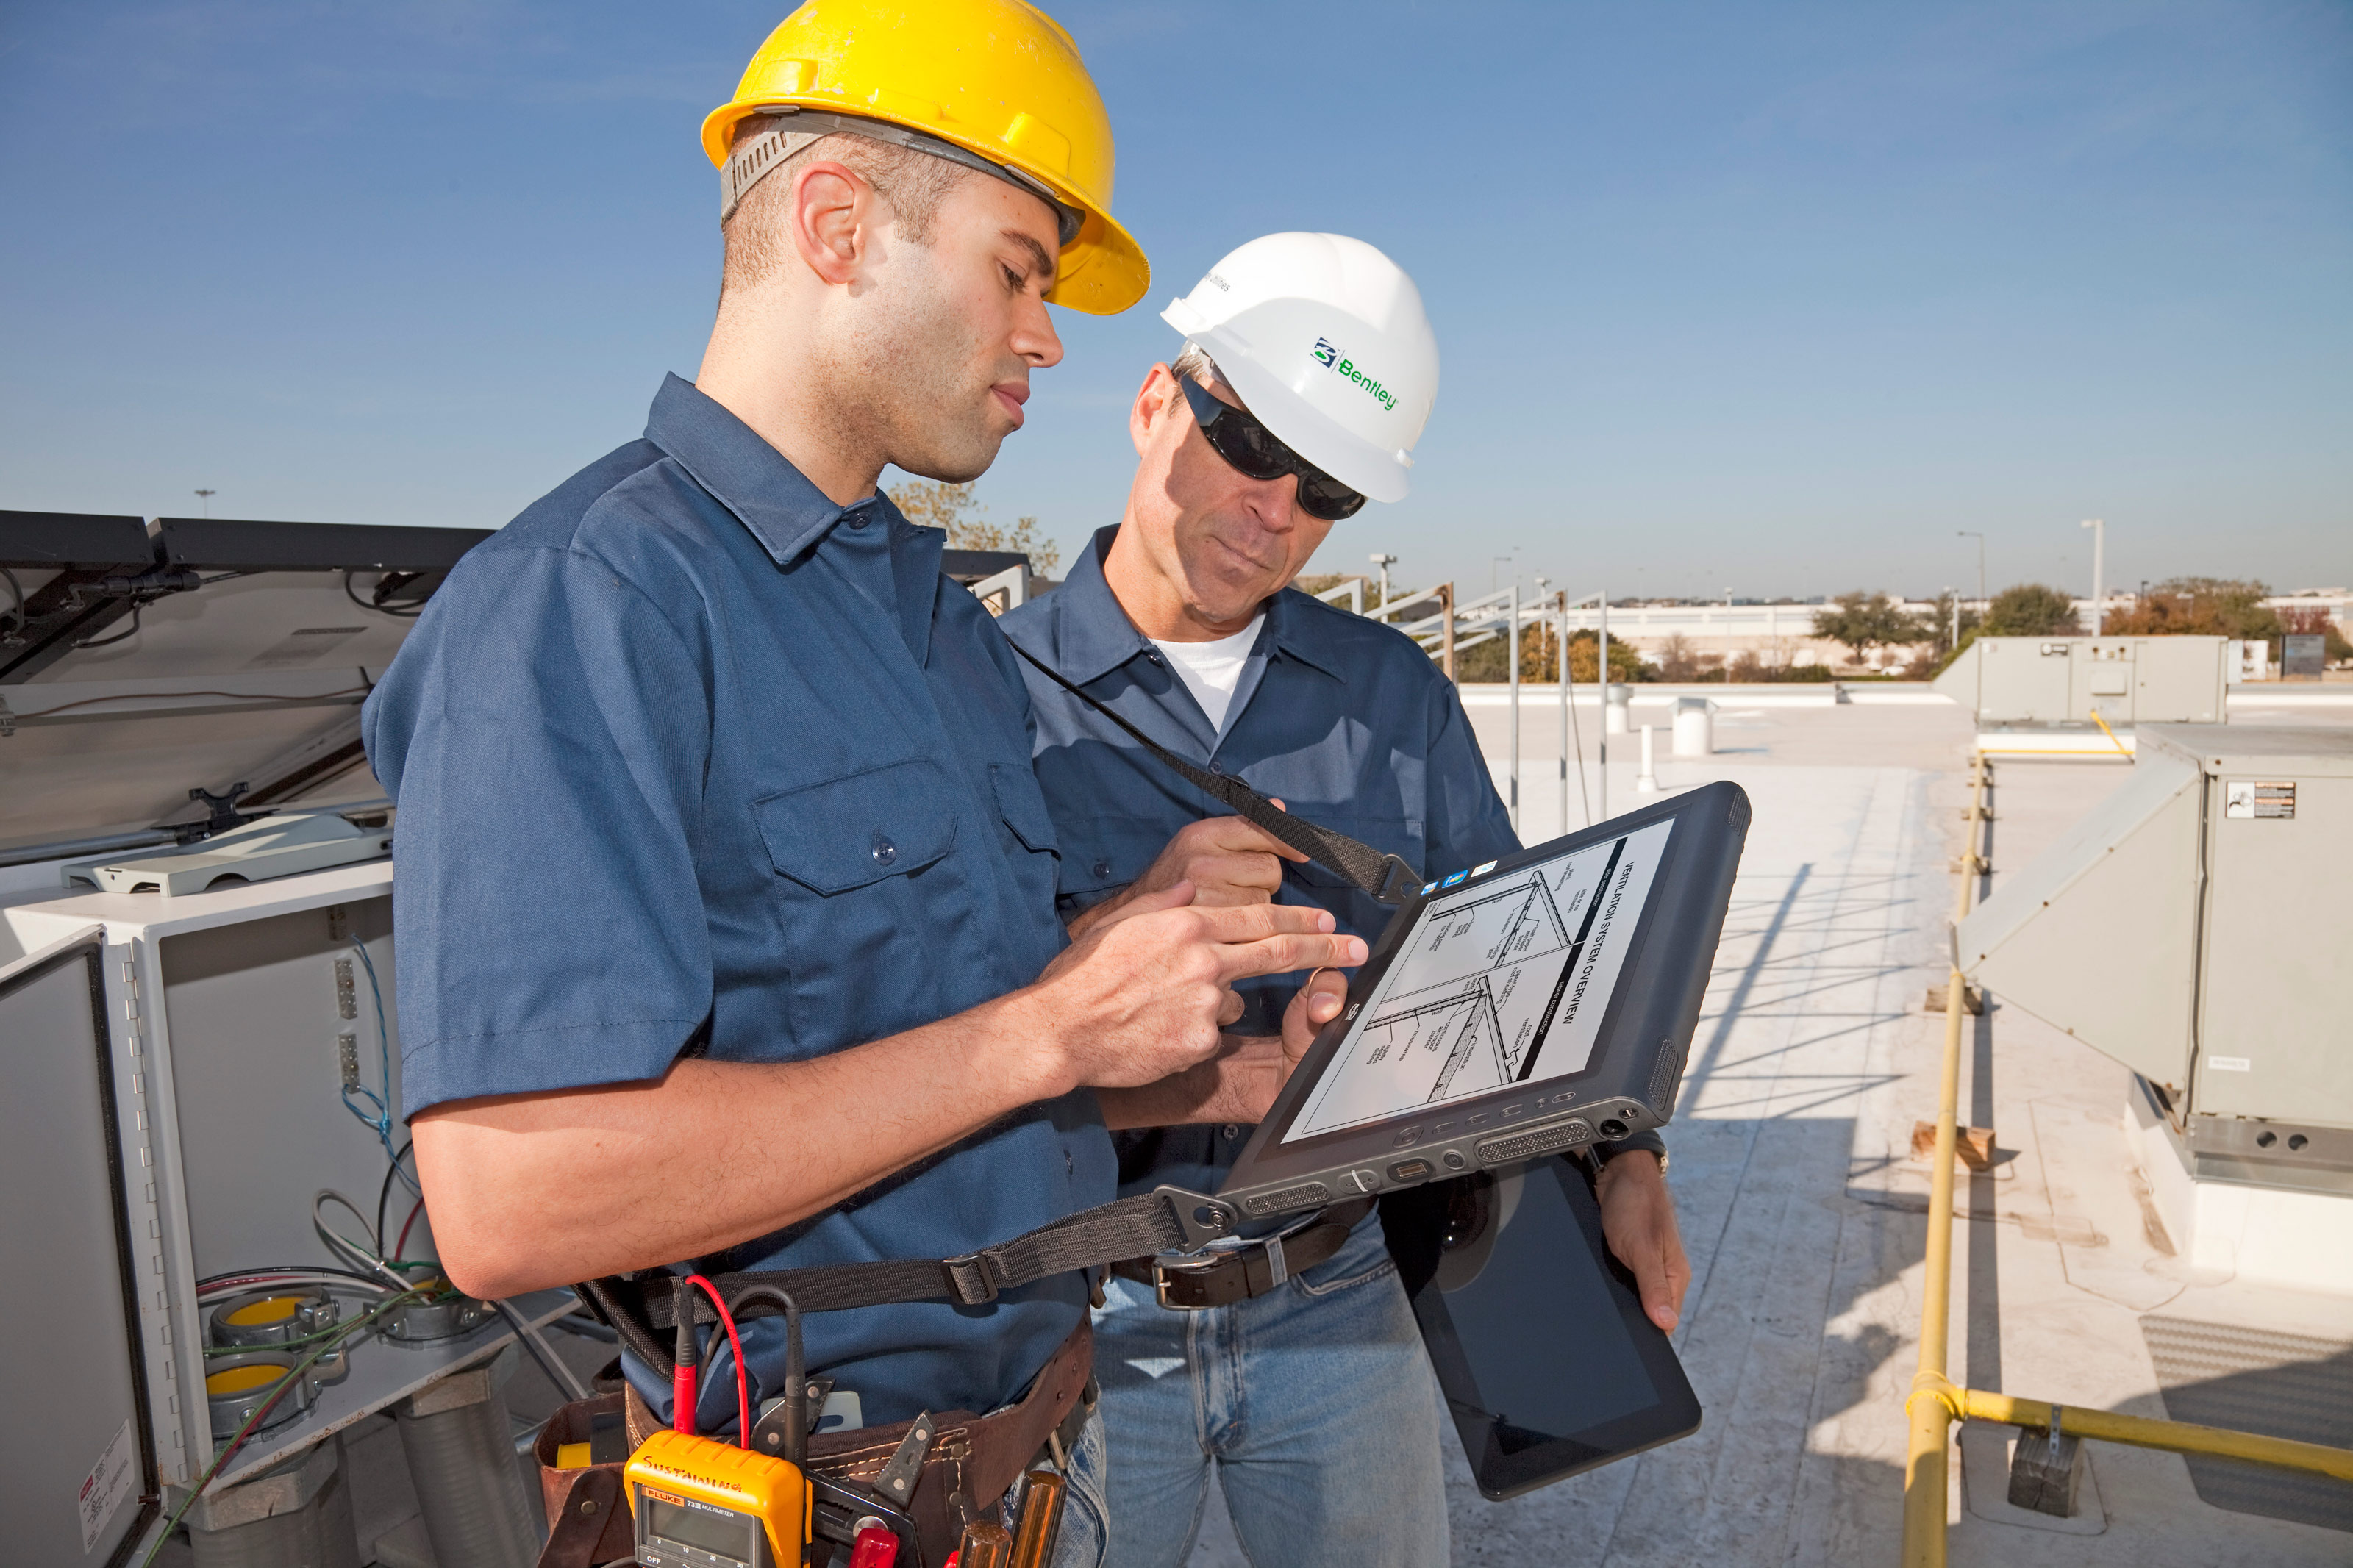 Taking Field Service to the Next Level with Smart M2M ...